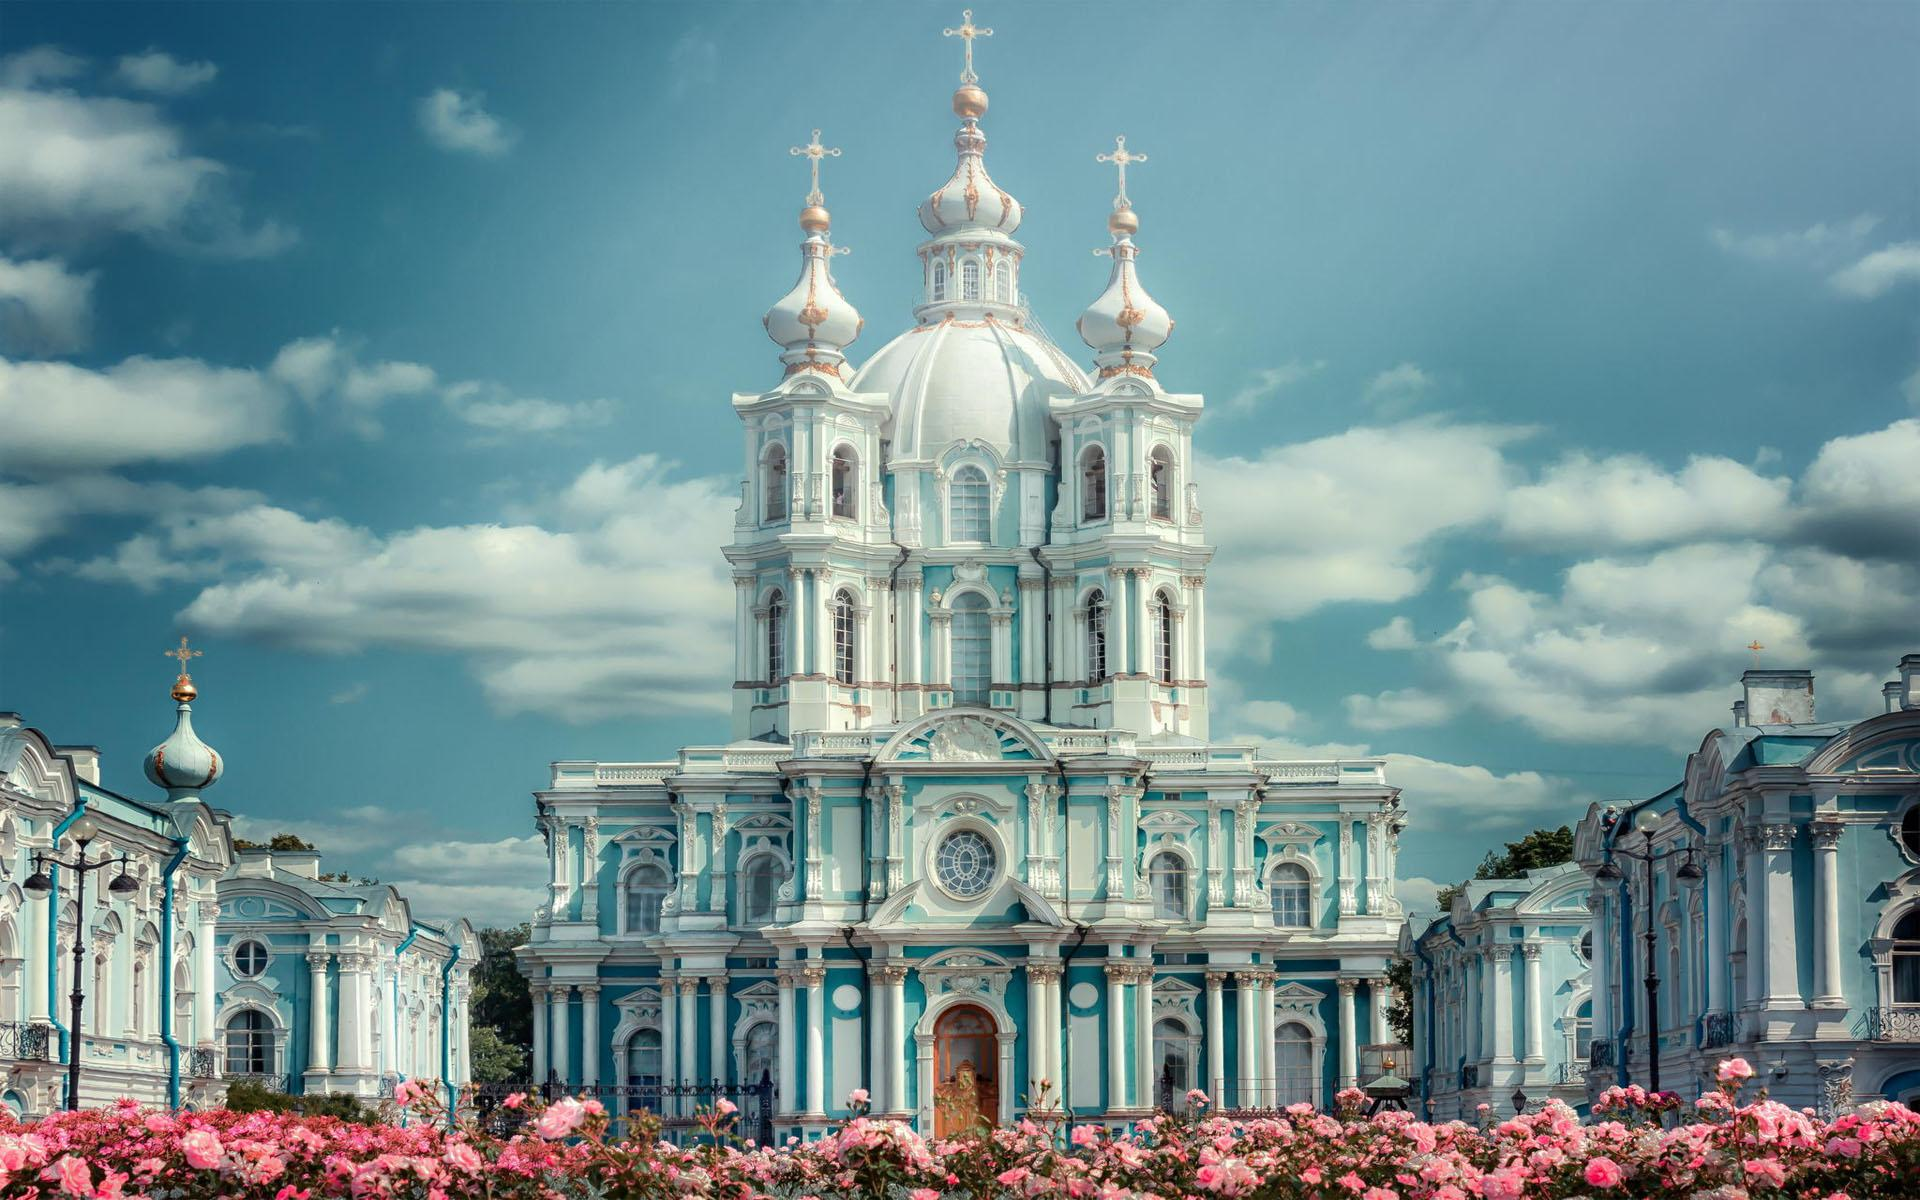 Architecture of St Petersburg HD wallpaper | HD Latest Wallpapers